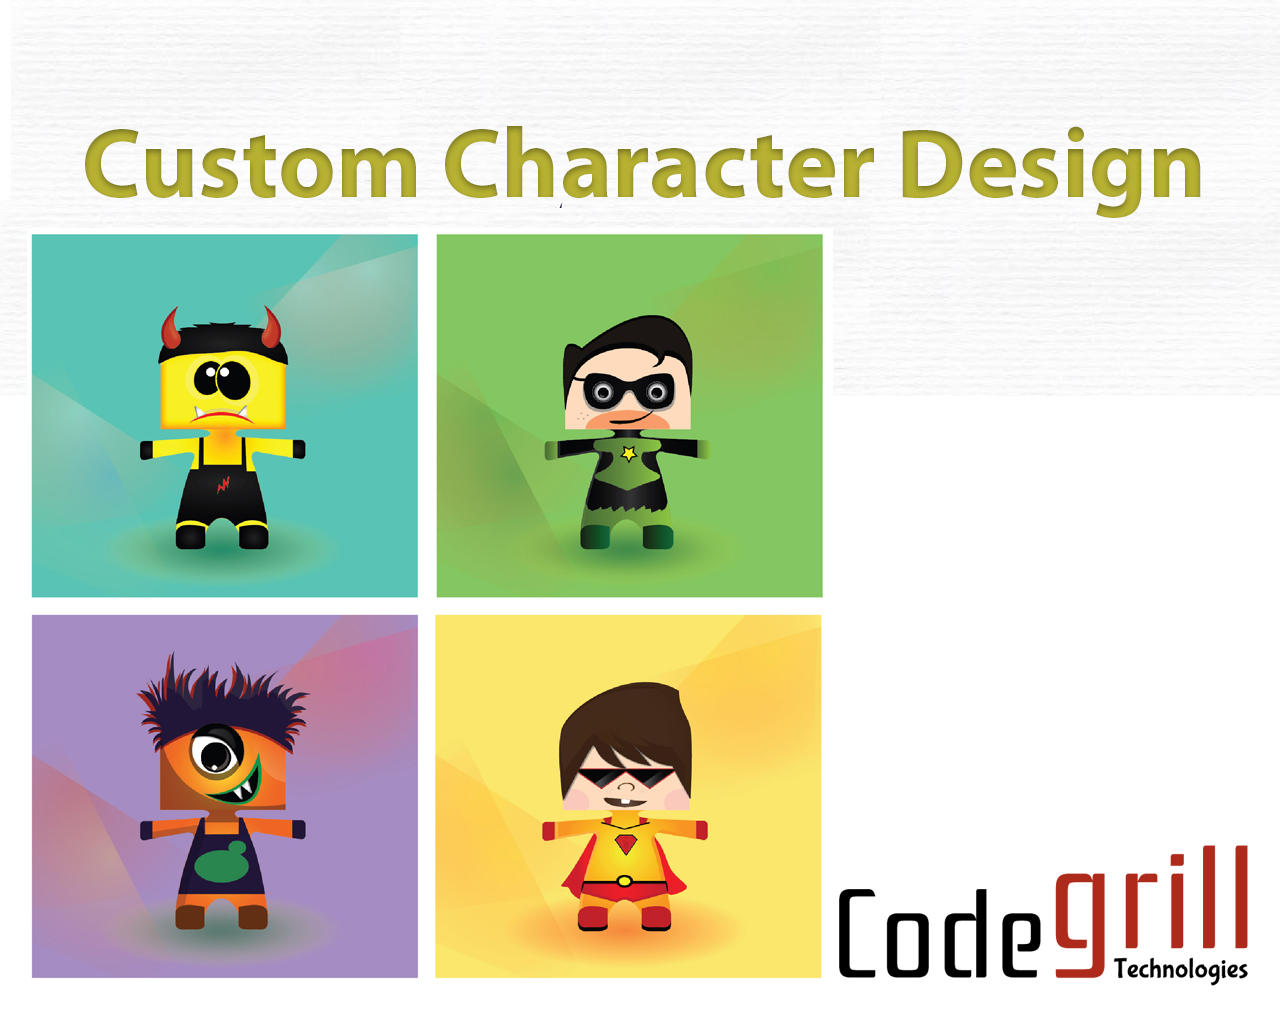 2d Character Design Pdf : Character design for games apps website by codegrill